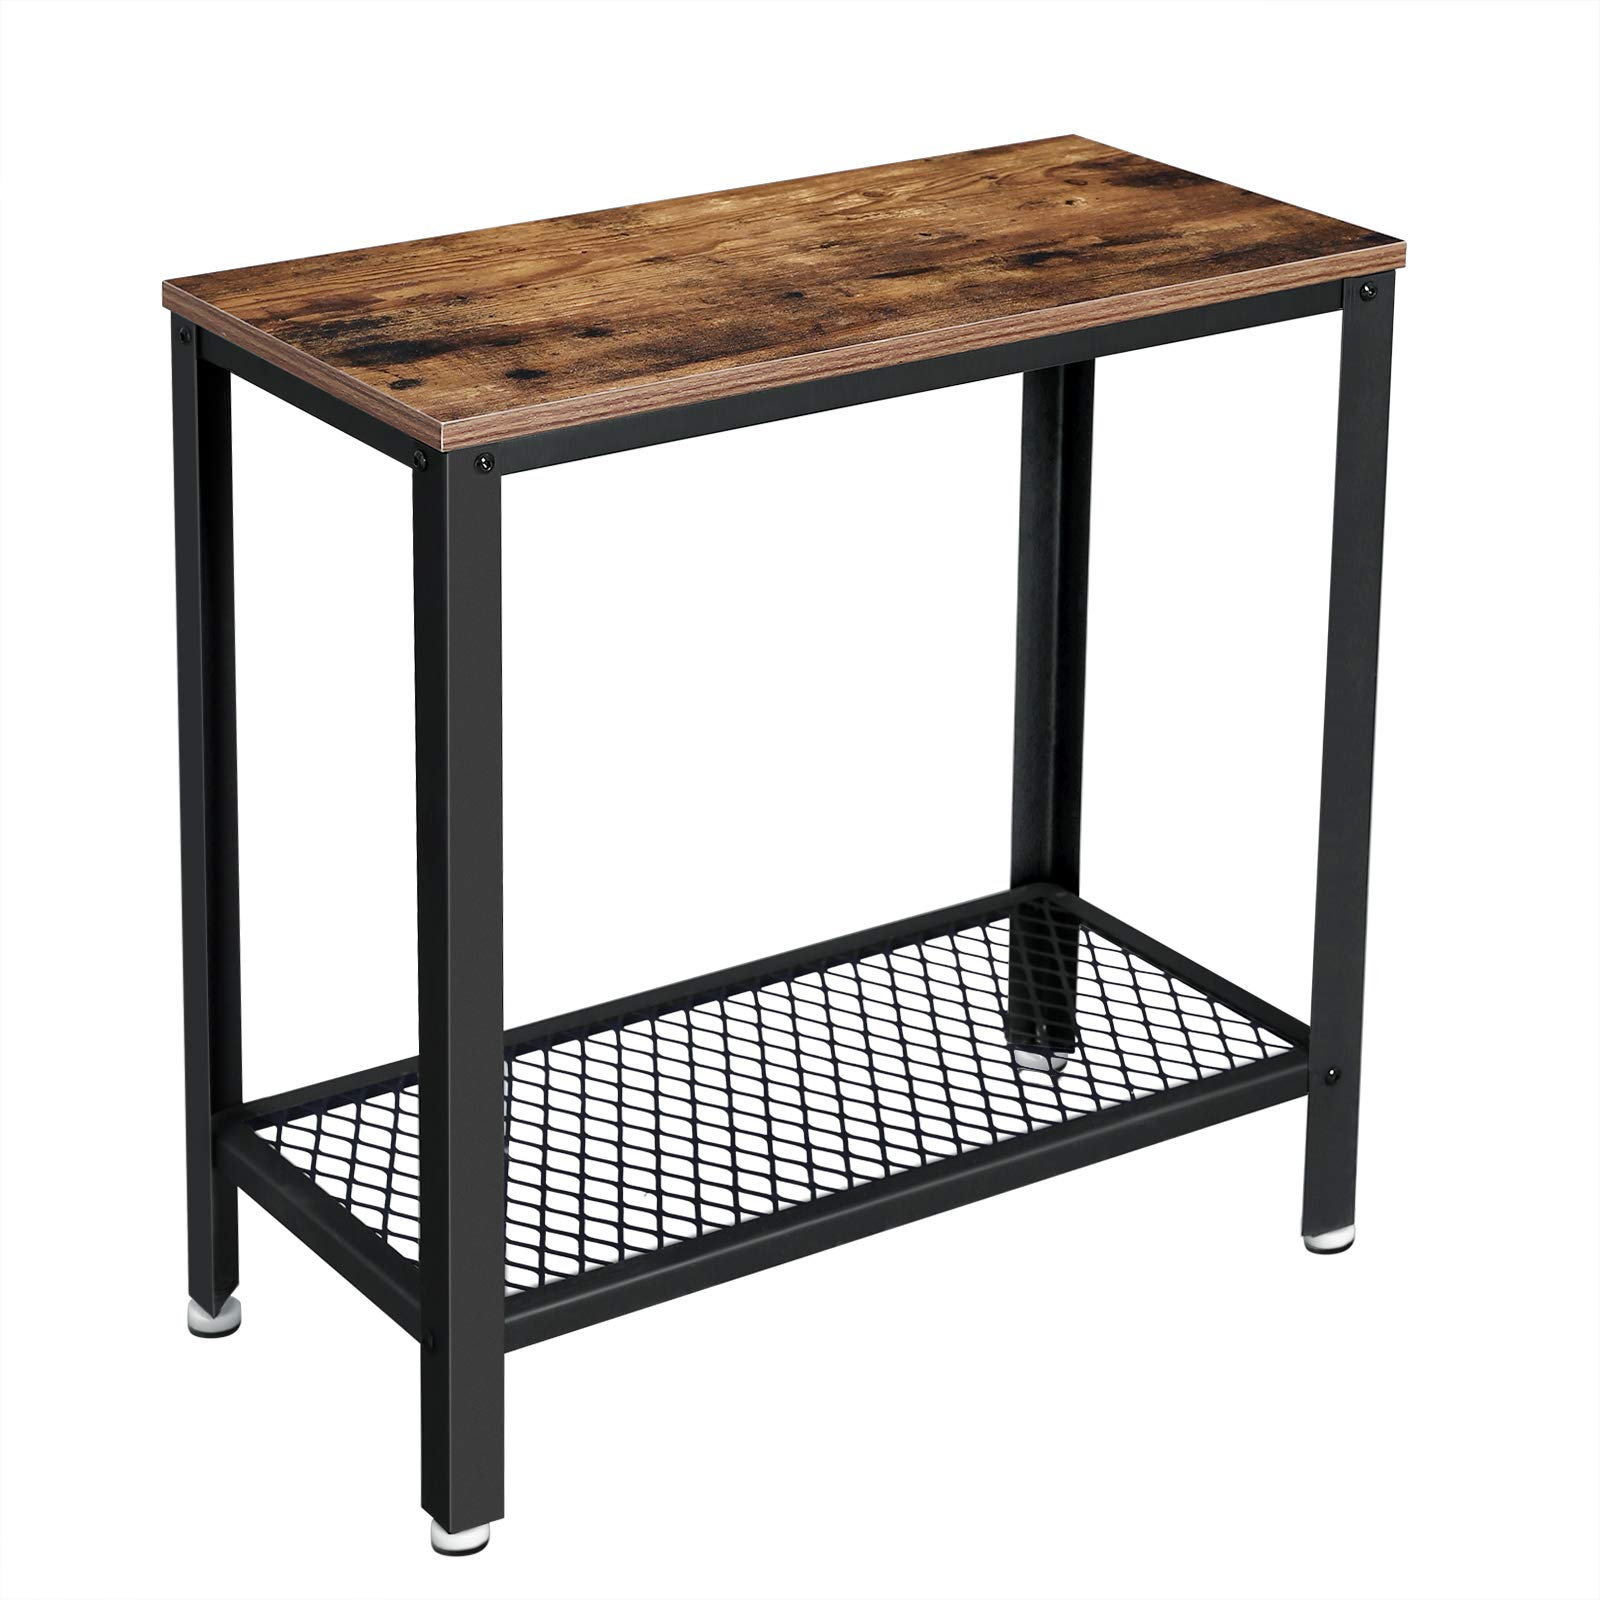 VASAGLE Industrial Side Table, End Table, Bedside Table With Mesh Shelf, Easy Assembly, Narrow and Space Saving in Living Room, Bedroom, Steel, 60 x 30 x 60 cm, Rustic Brown LET31BX